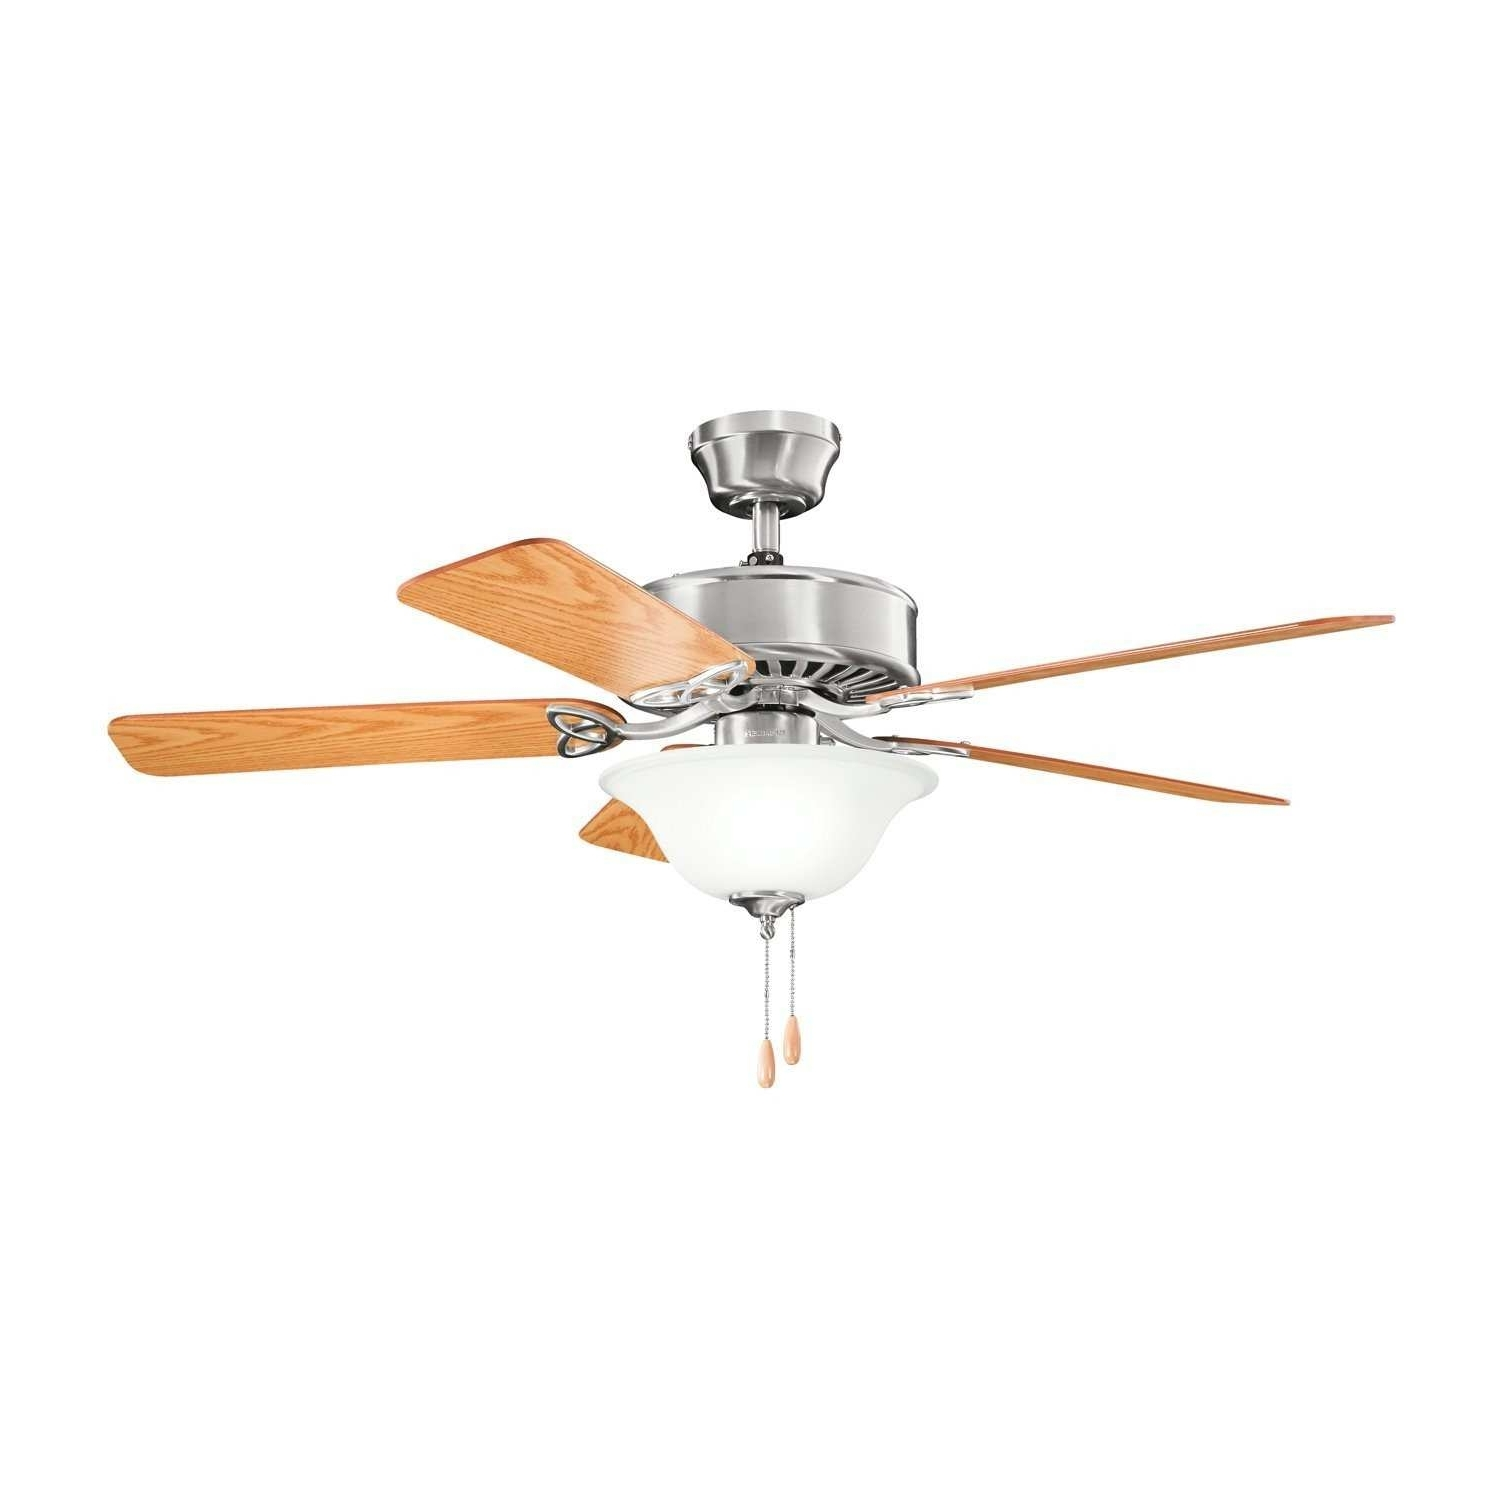 Outdoor Ceiling Fans With Metal Blades Elegant Kichler Mwh 50 In Well Known Outdoor Ceiling Fans At Amazon (View 18 of 21)